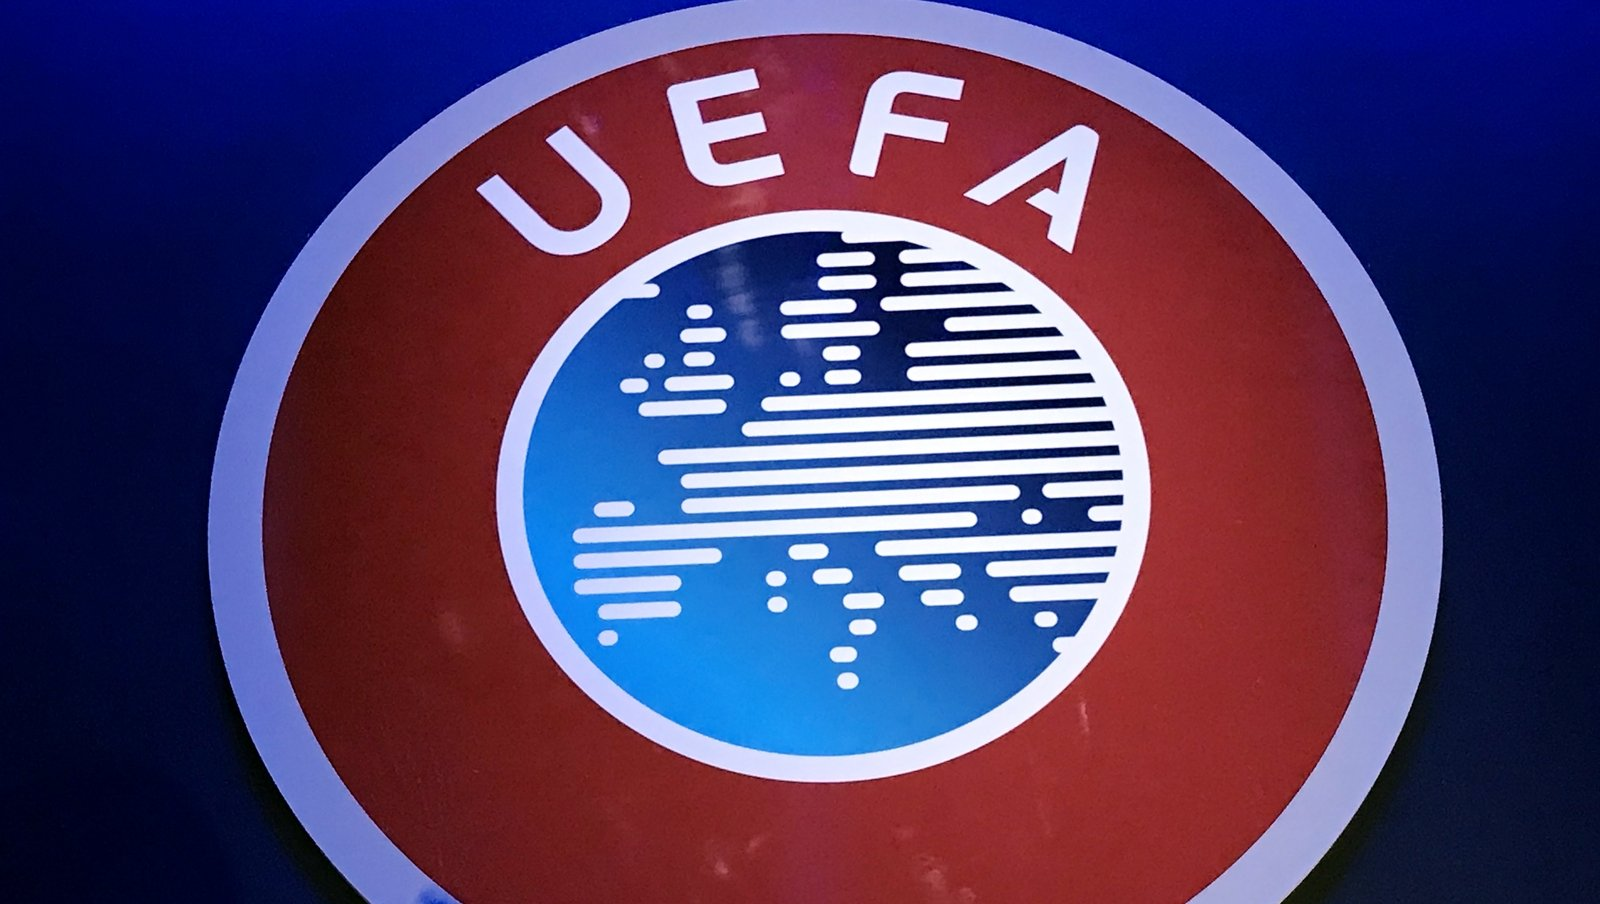 UEFA secures court docket expose to dam illegal streaming